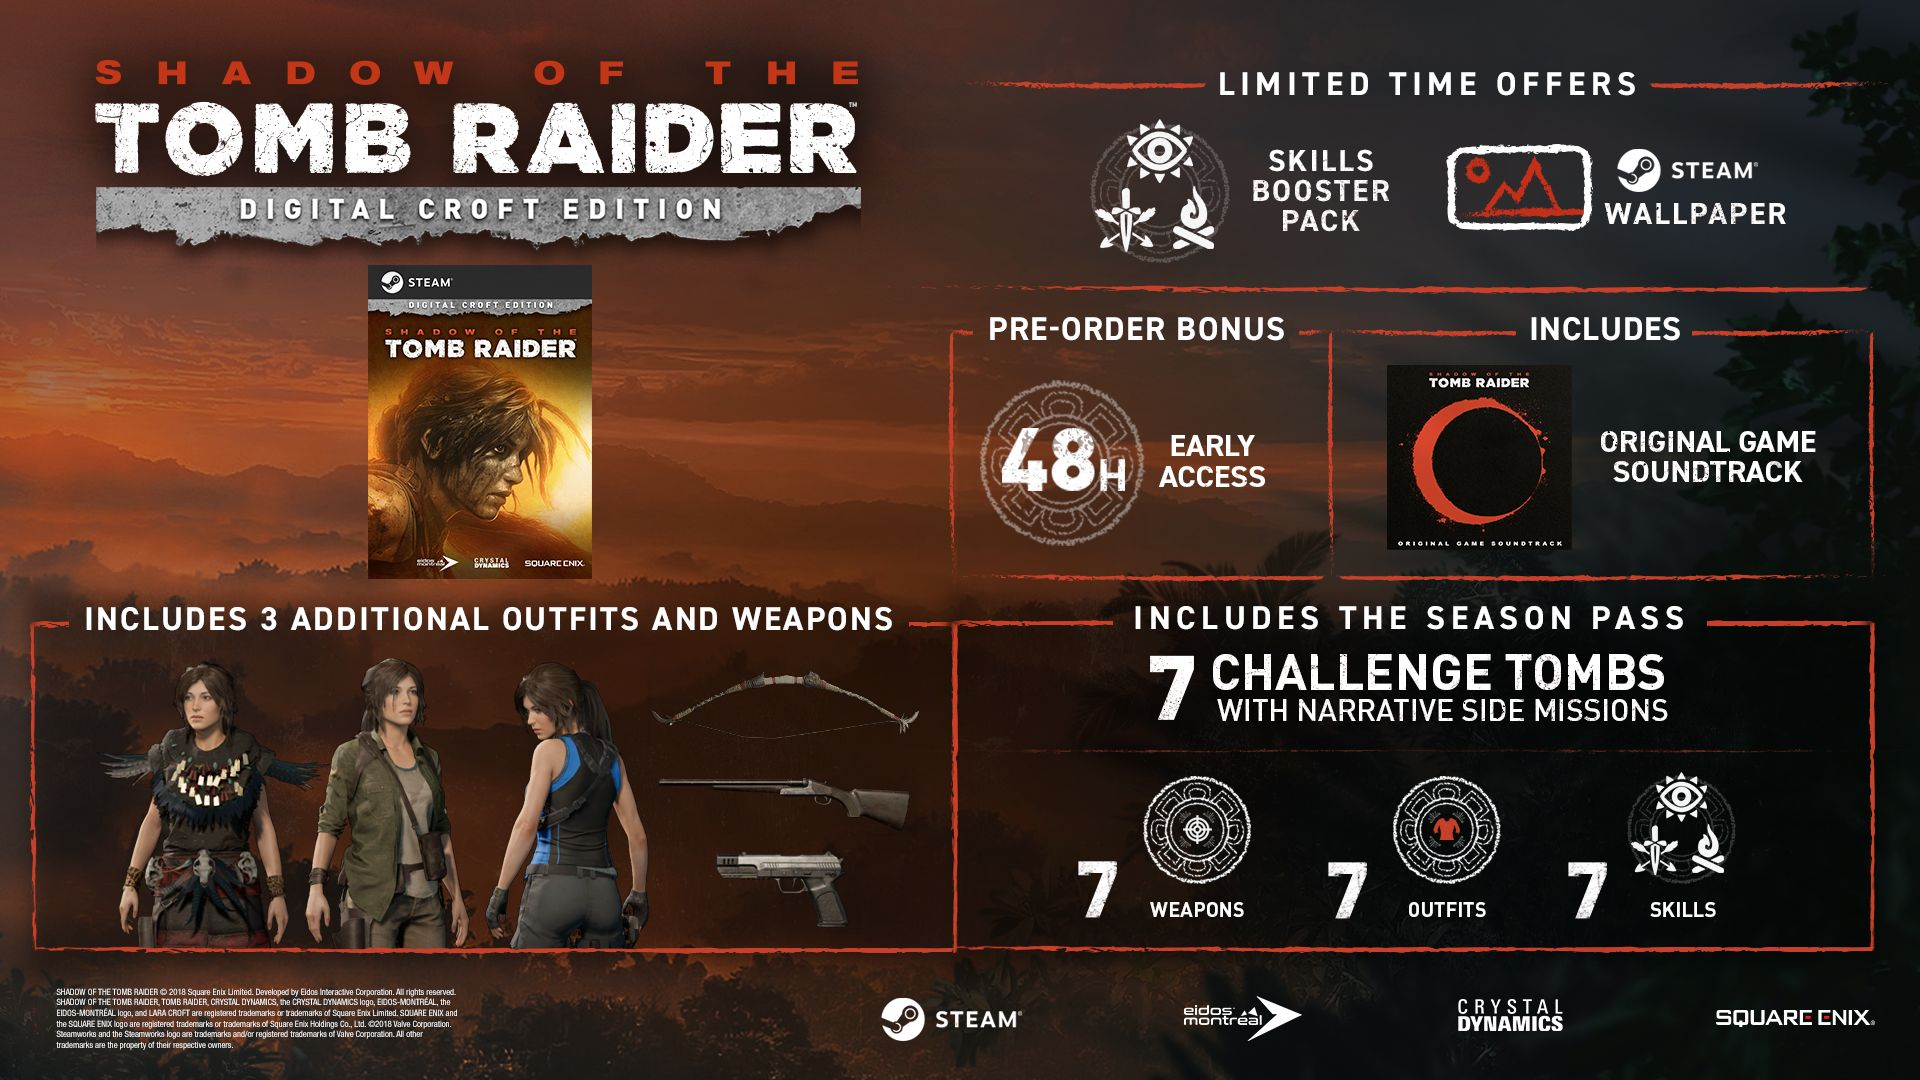 Shadow of the Tomb Raider - Croft Edition [PC Download] | Square